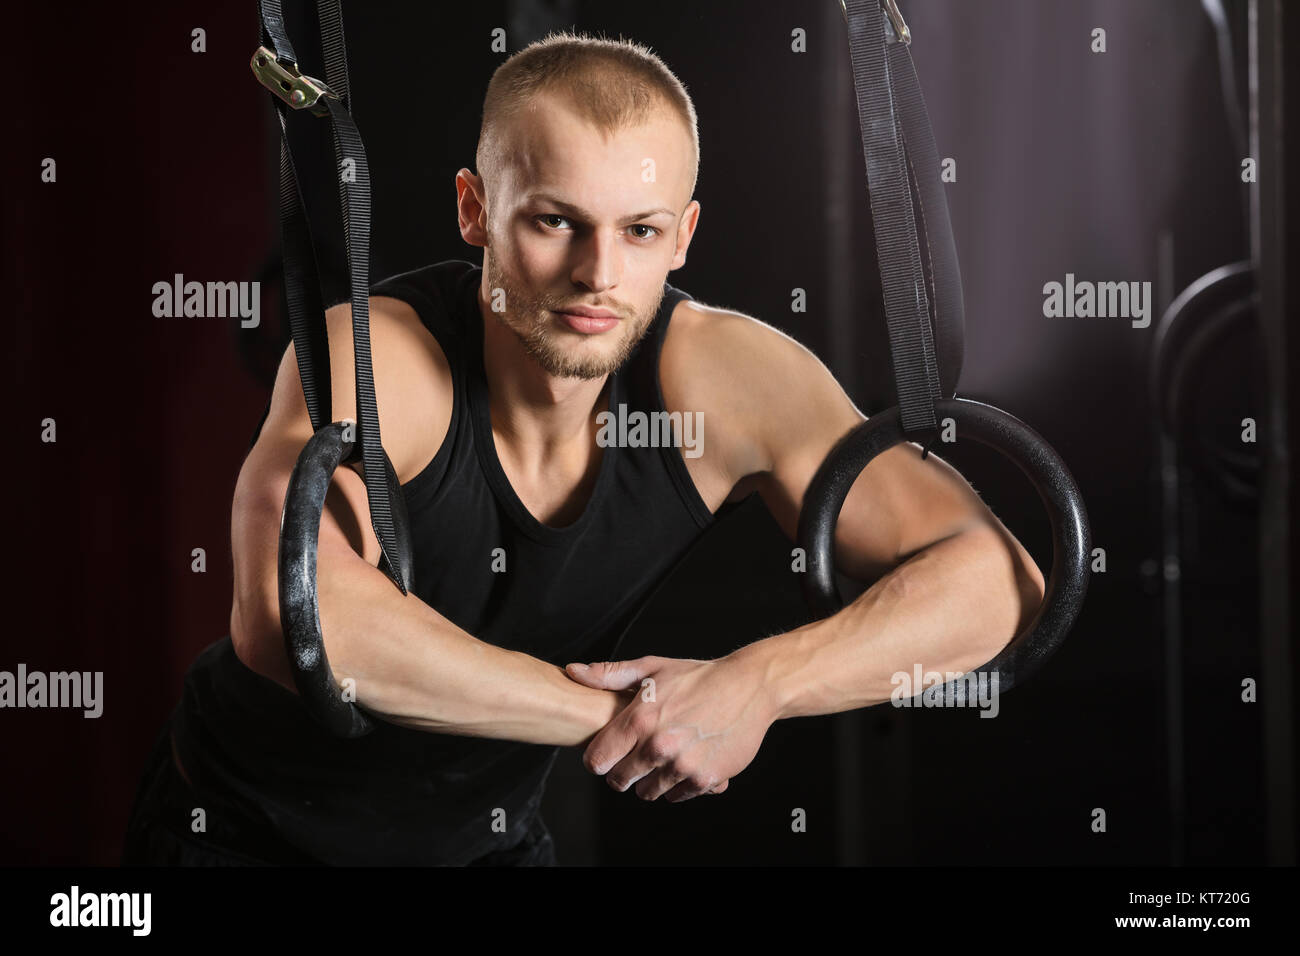 Male Athlete With Gymnastic Rings - Stock Image